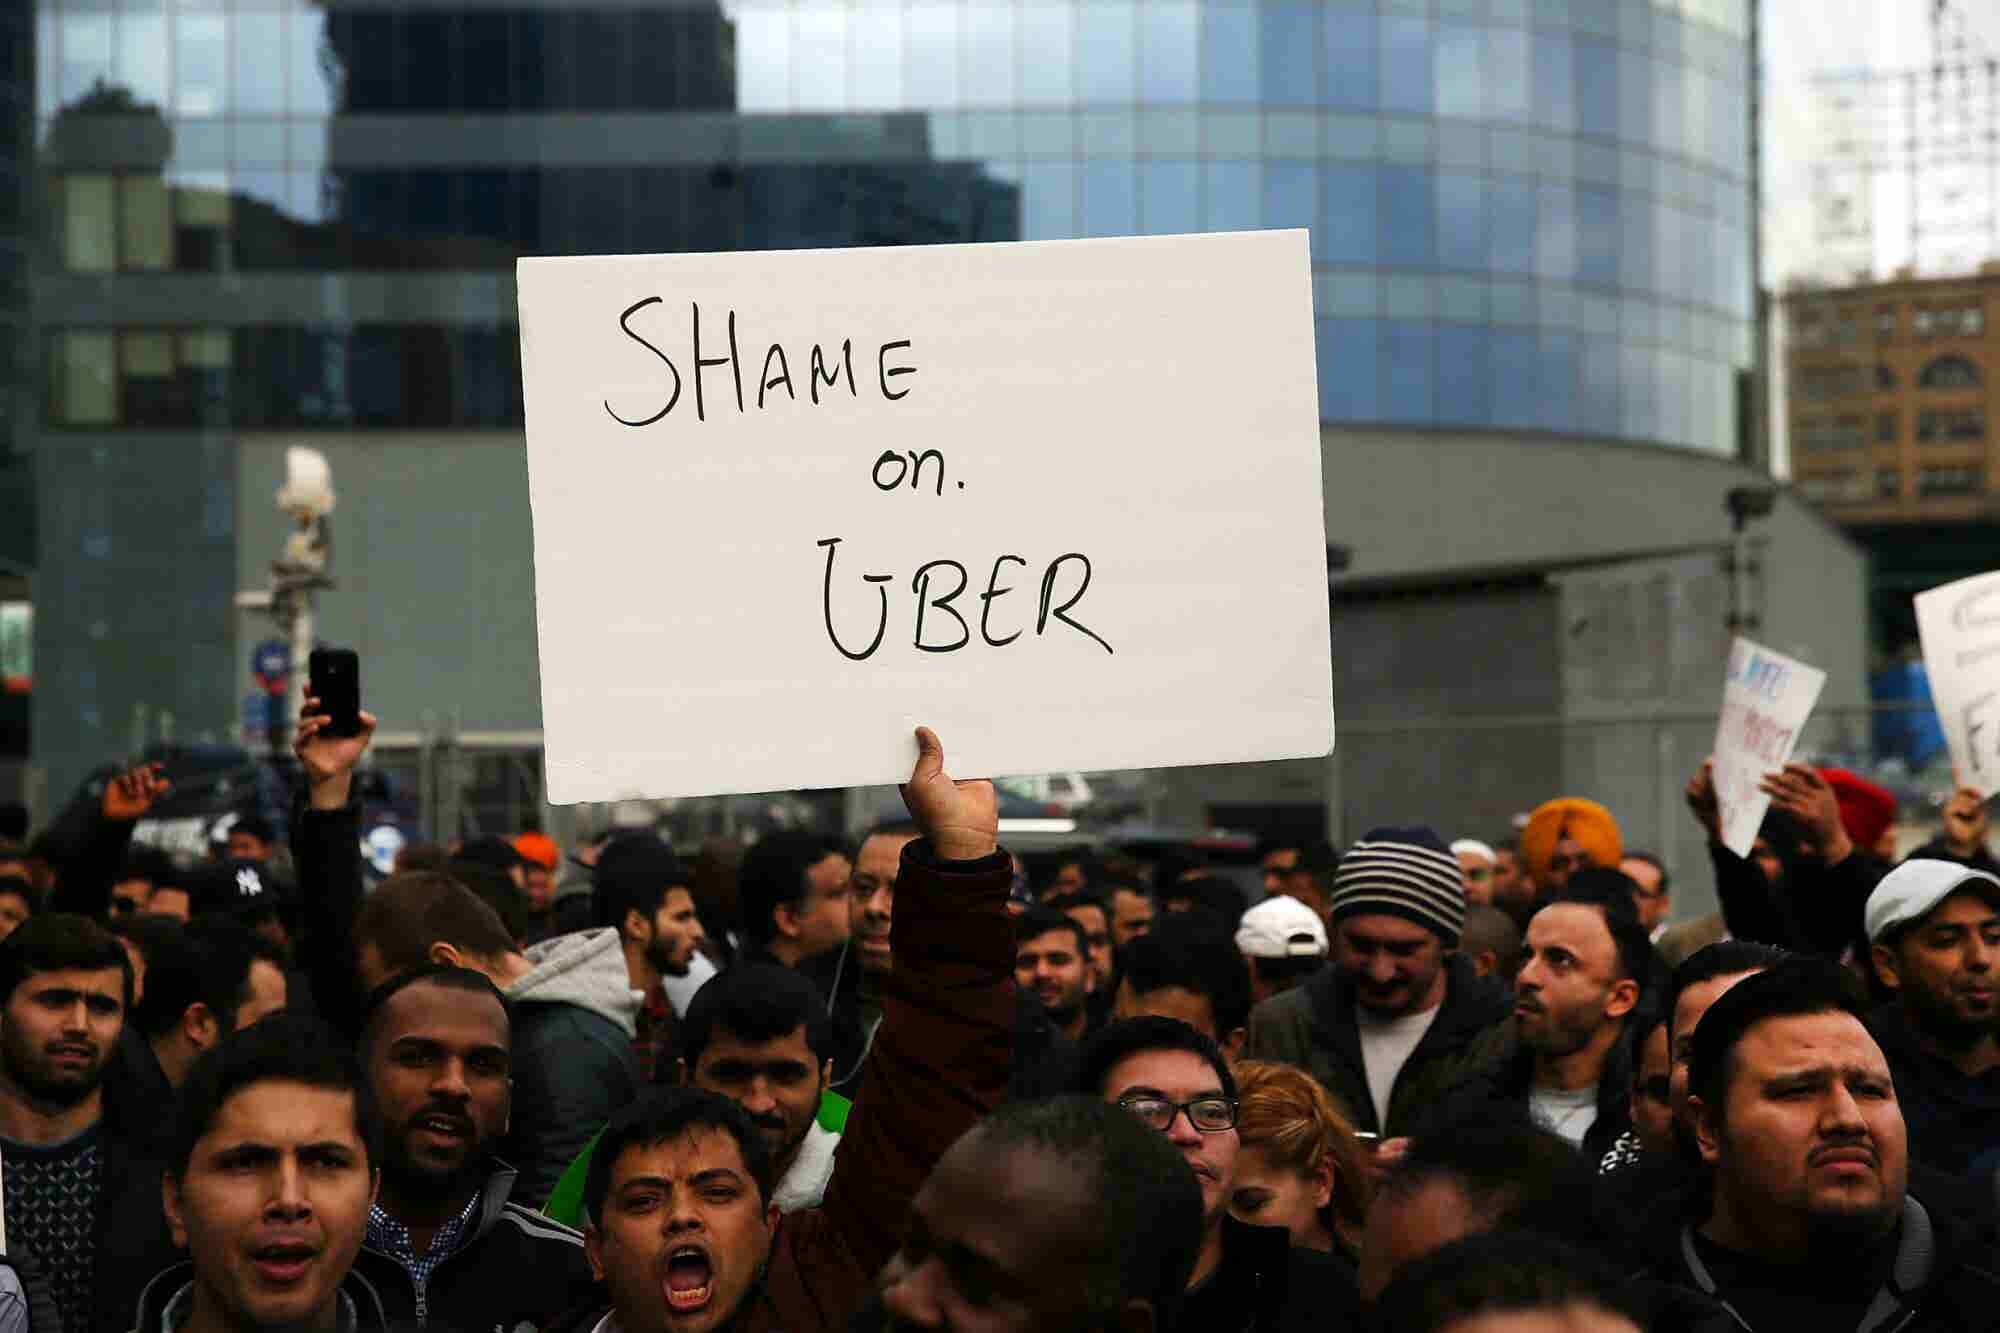 Uber Drivers Are Sleeping in Their Cars to Make Enough Money. Now, They're Going on Strike.